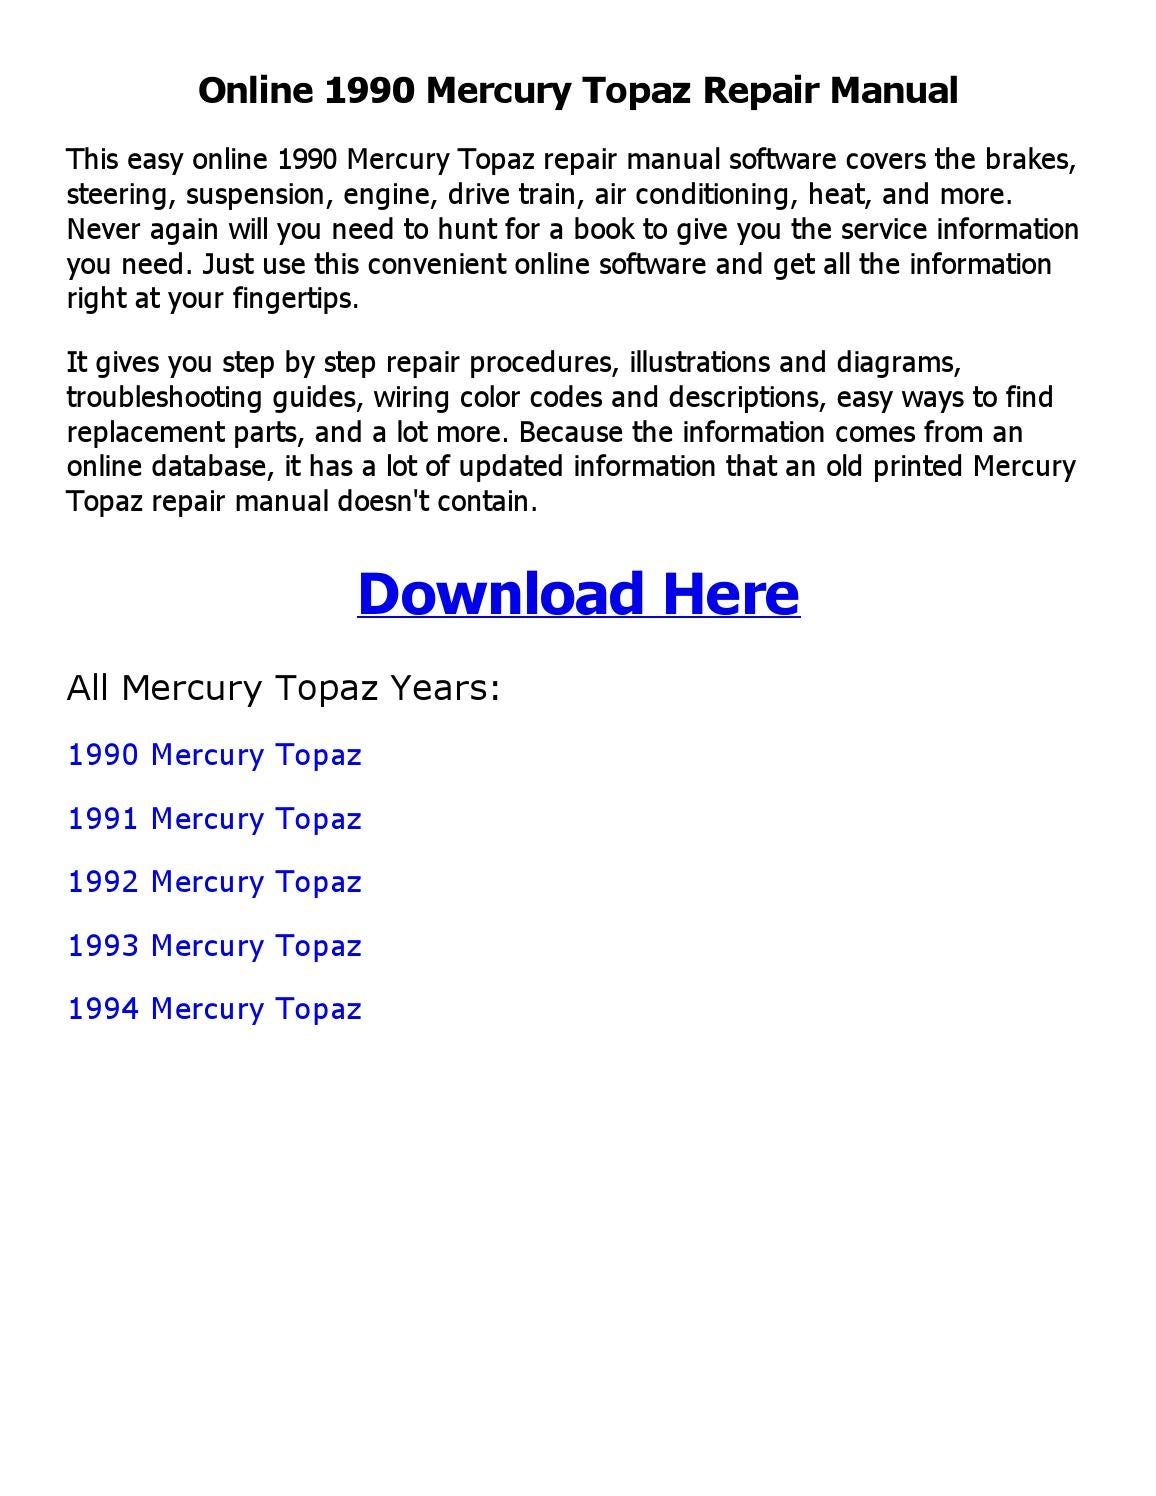 1994 Mercury Topaz Fuse Diagram Wiring Library 1990 Box Repair Manual Online By Shoaibsiddique Issuu